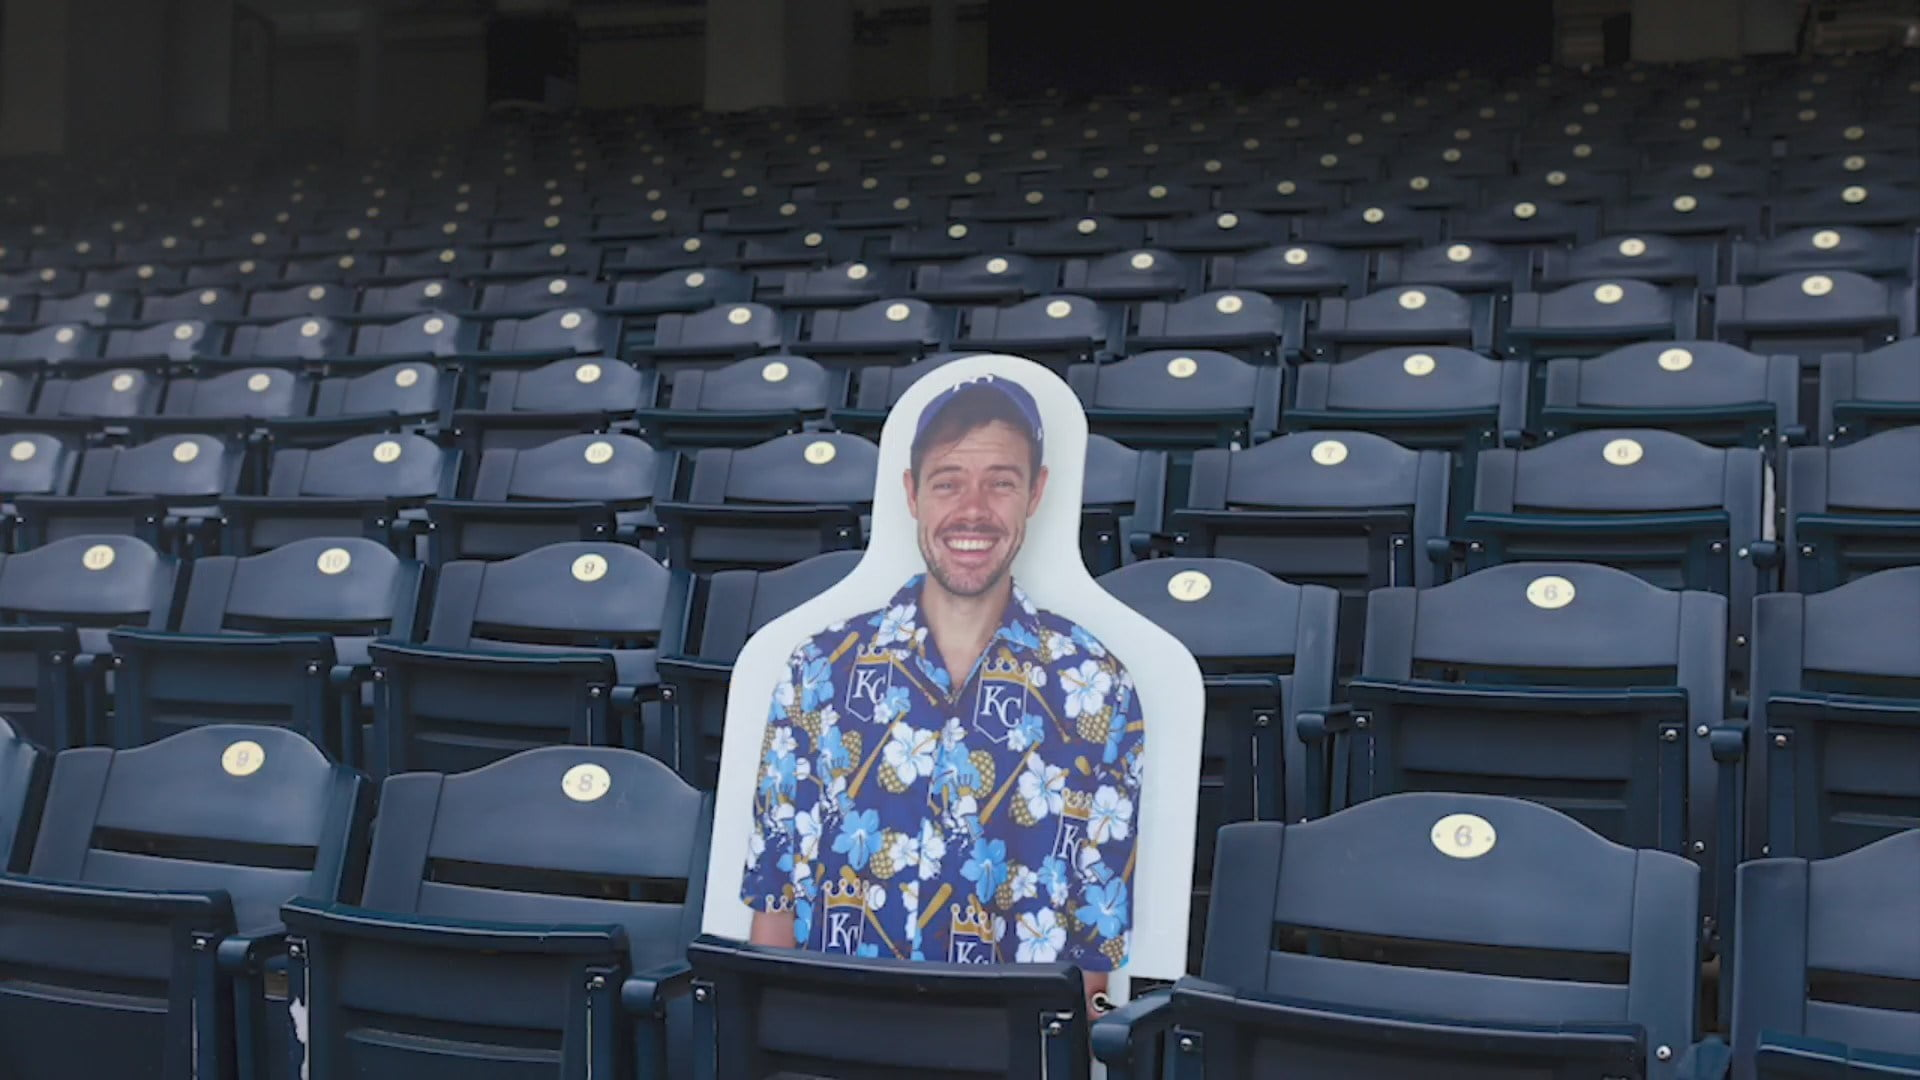 Kansas City Royals Putting Cutouts of Fans in Stands to Fill Seats During Games